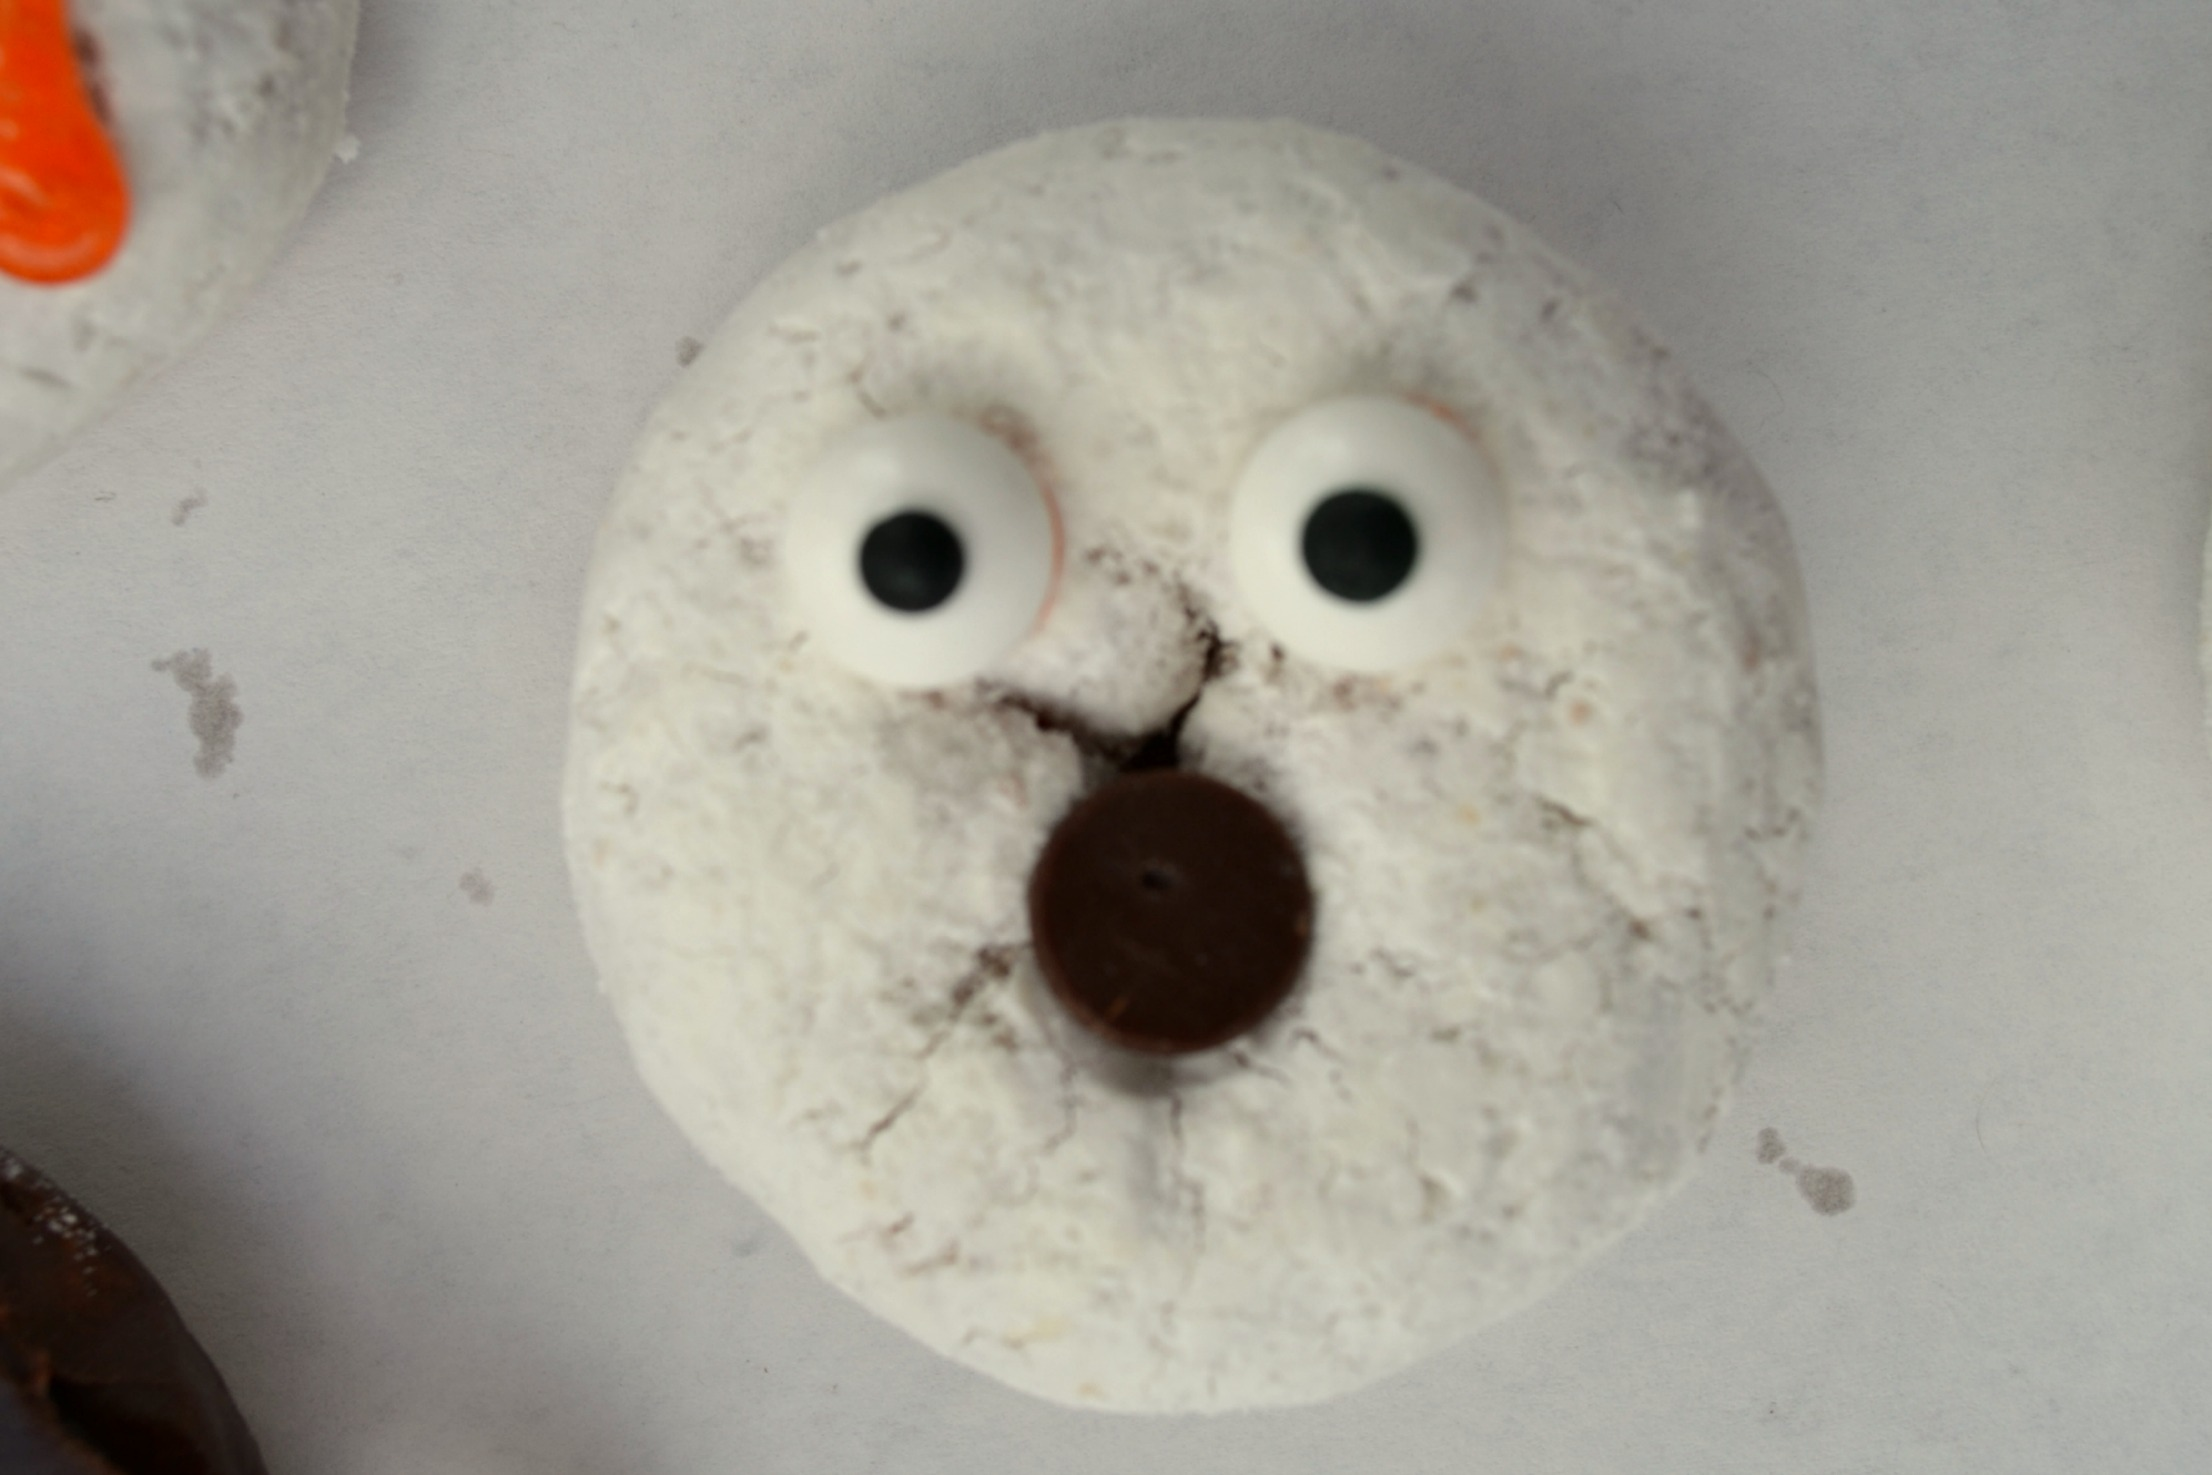 a powdered sugar donut made to look like a ghost with 2 candy eyes and a chocolate chip